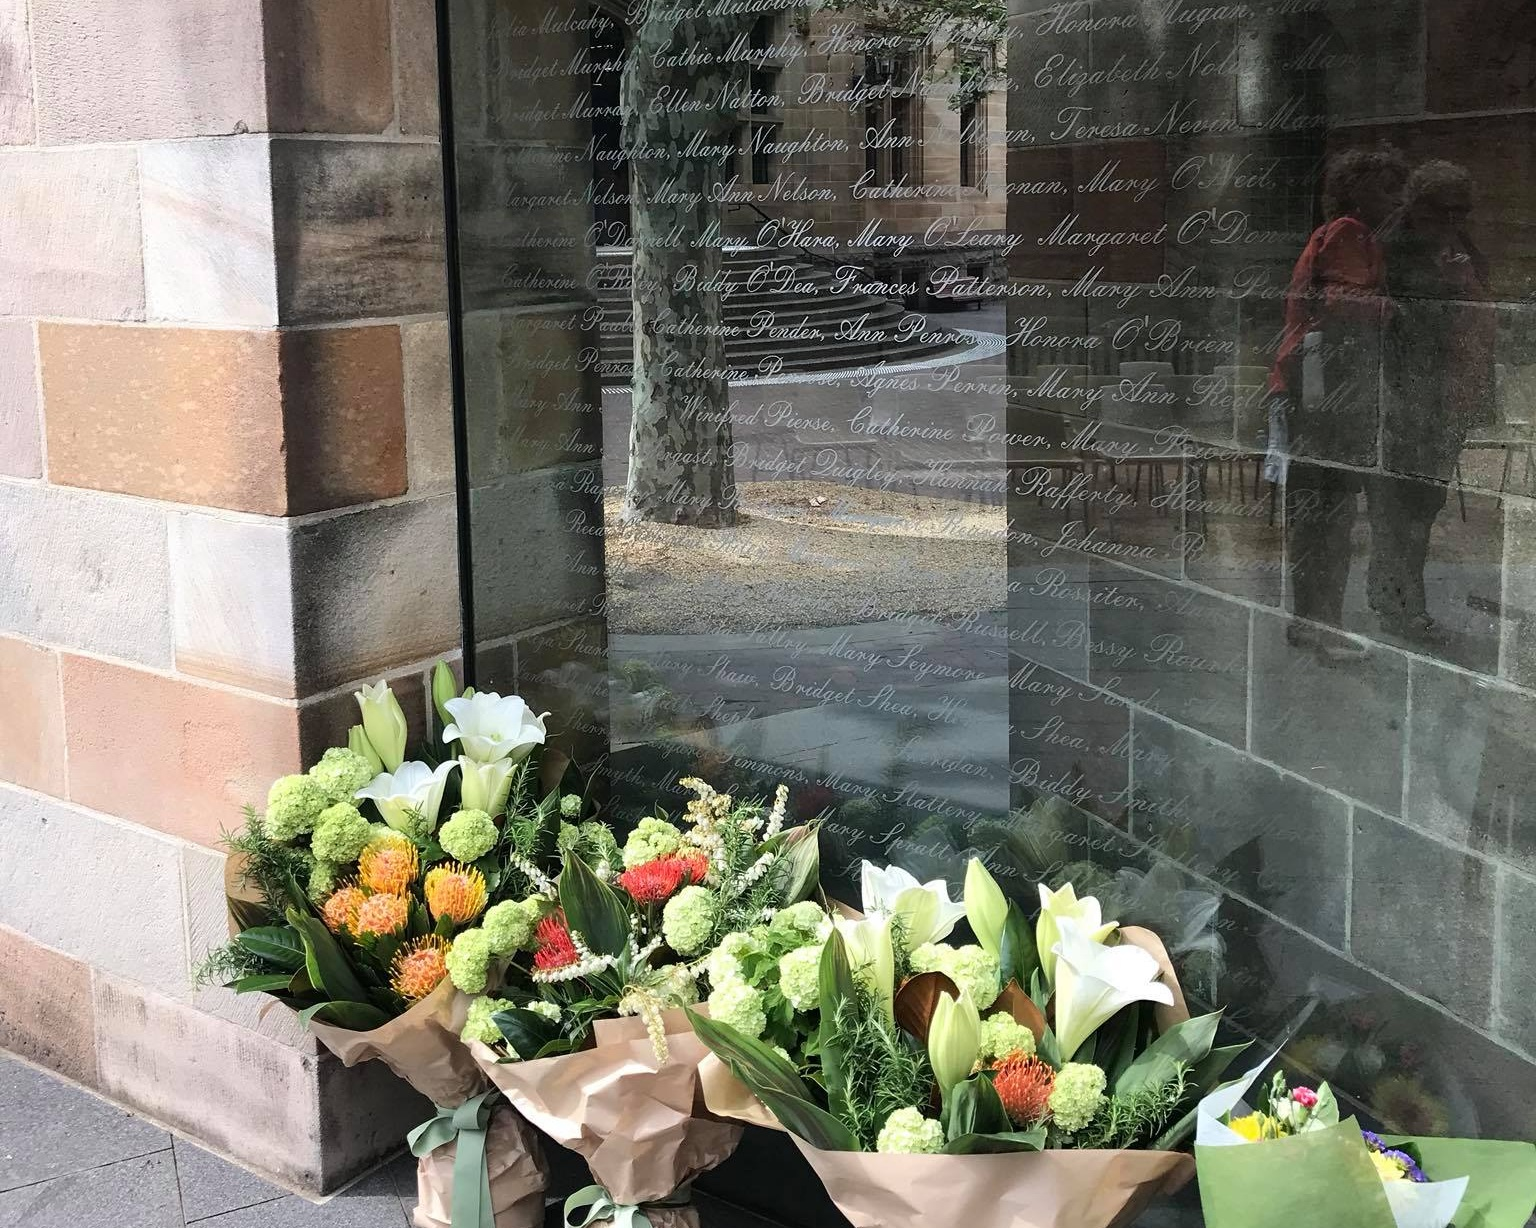 The glass panels of Sydney's Famine Memorial feature the names of Irish orphan women settled in Australia between 1848 and 1850.